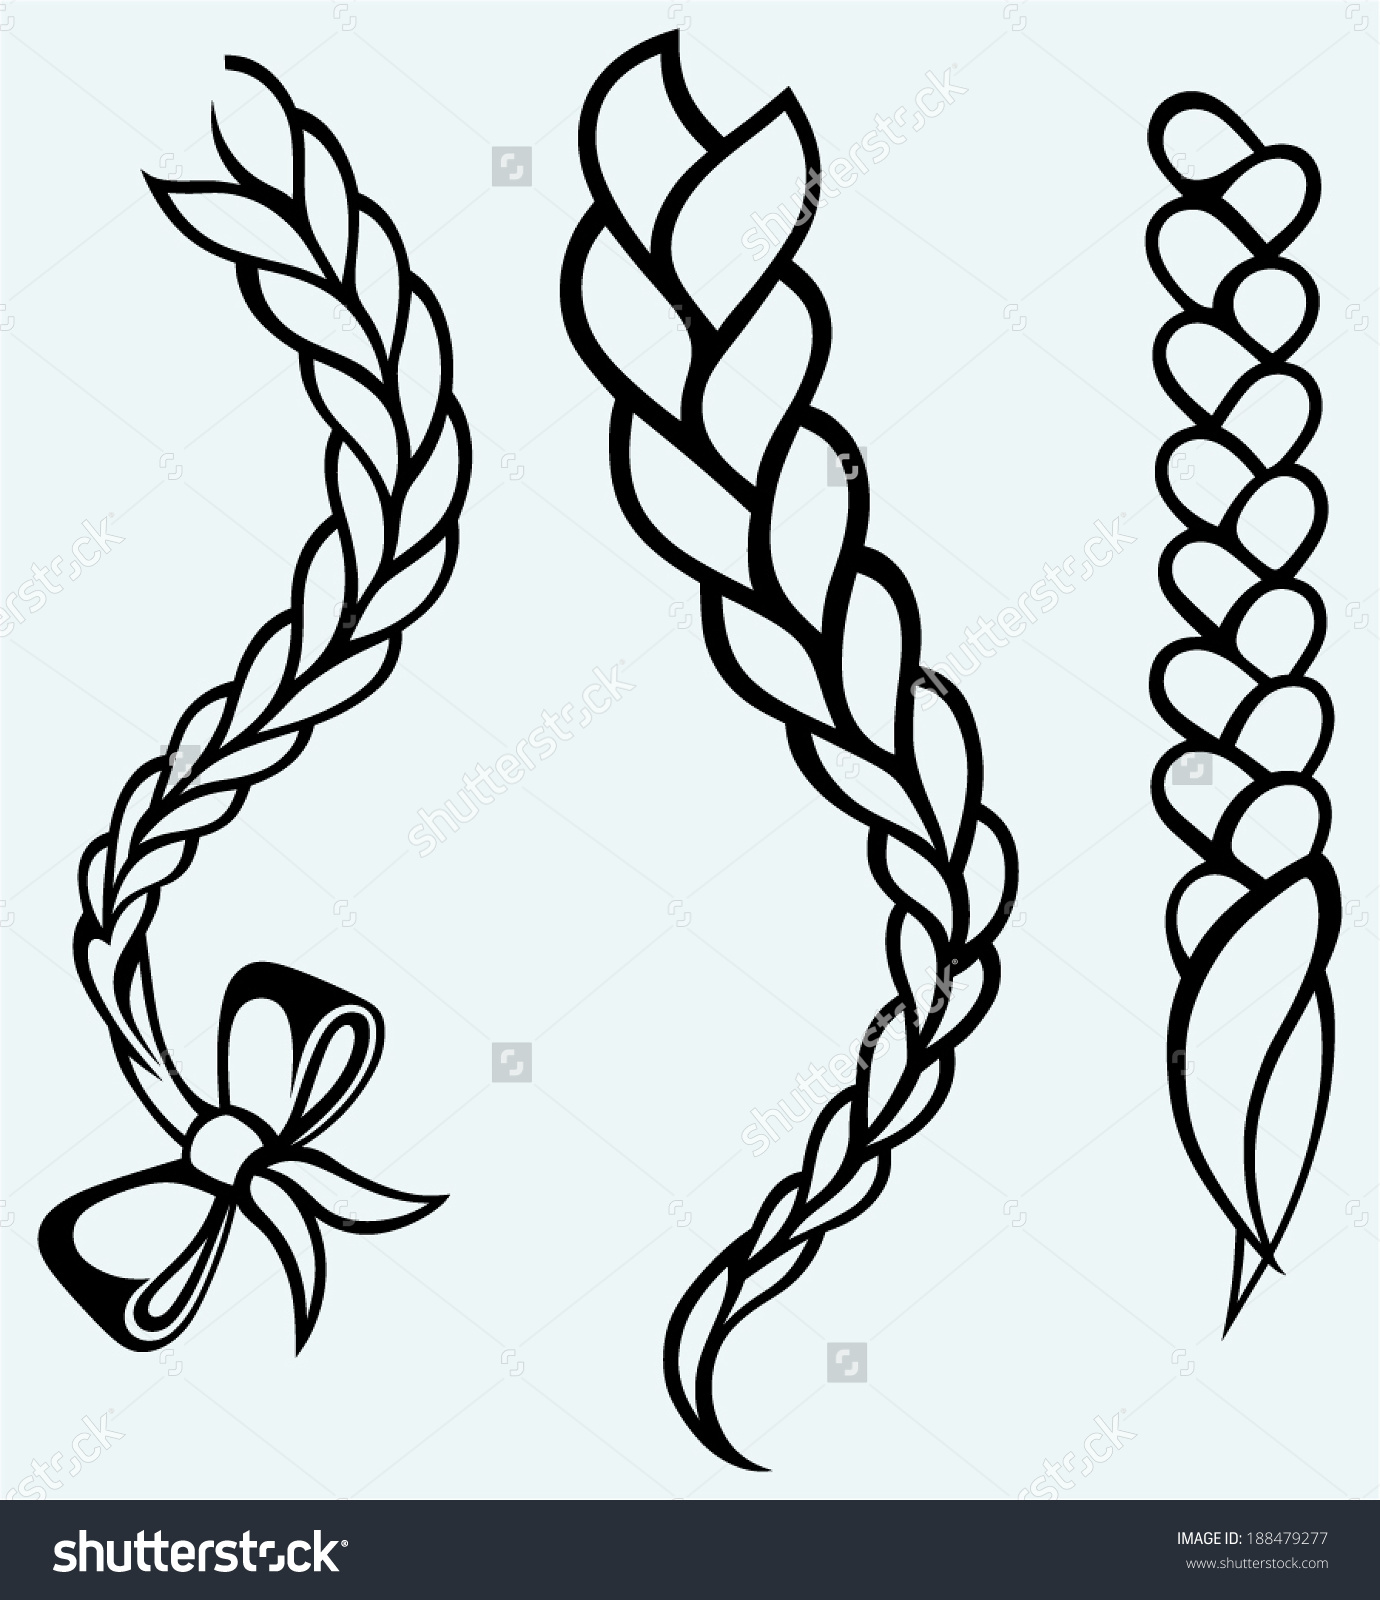 Silhouette hair braid clipart.